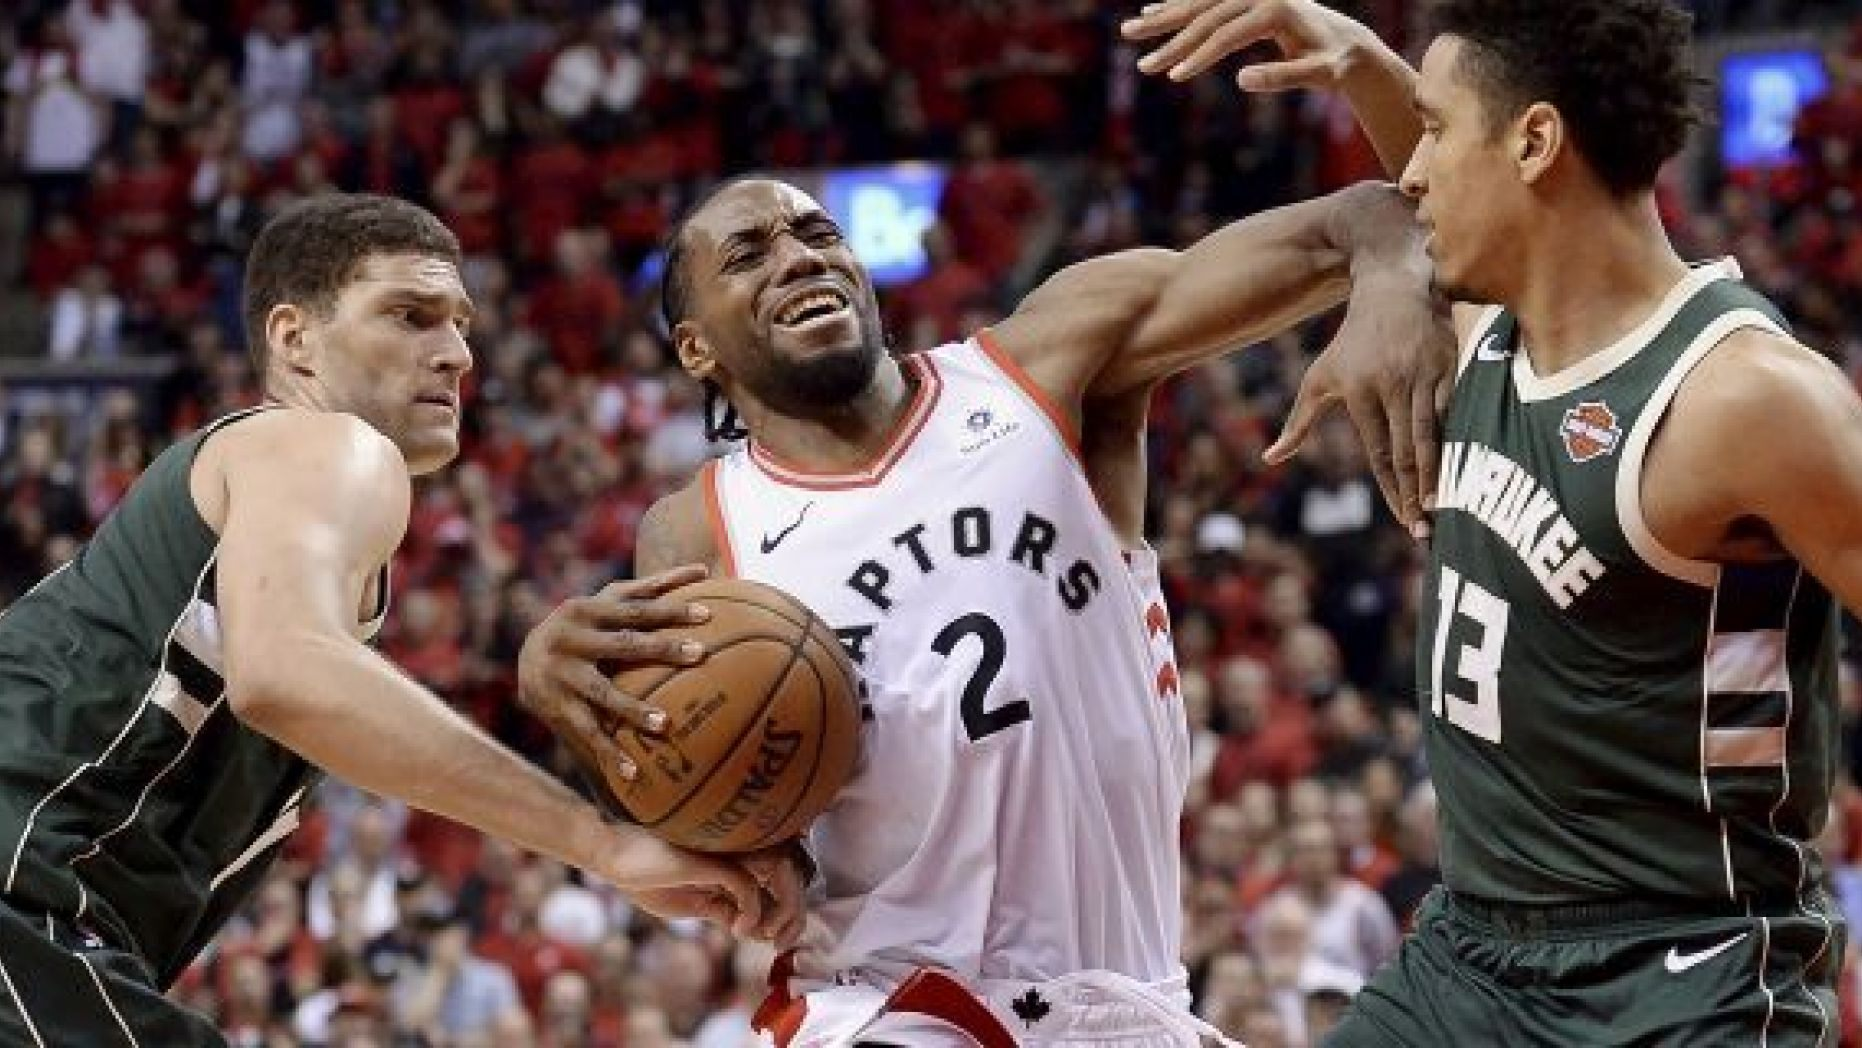 Toronto Raptors forward Kawhi Leonard (2) drives to the net against Milwaukee Bucks center Brook Lopez (11) and guard Malcolm Brogdon (13) during the second overtime period of Game 3 of the NBA basketball playoffs Eastern Conference finals in Toronto on Sunday, May 19, 2019. (Nathan Denette/The Canadian Press via AP)